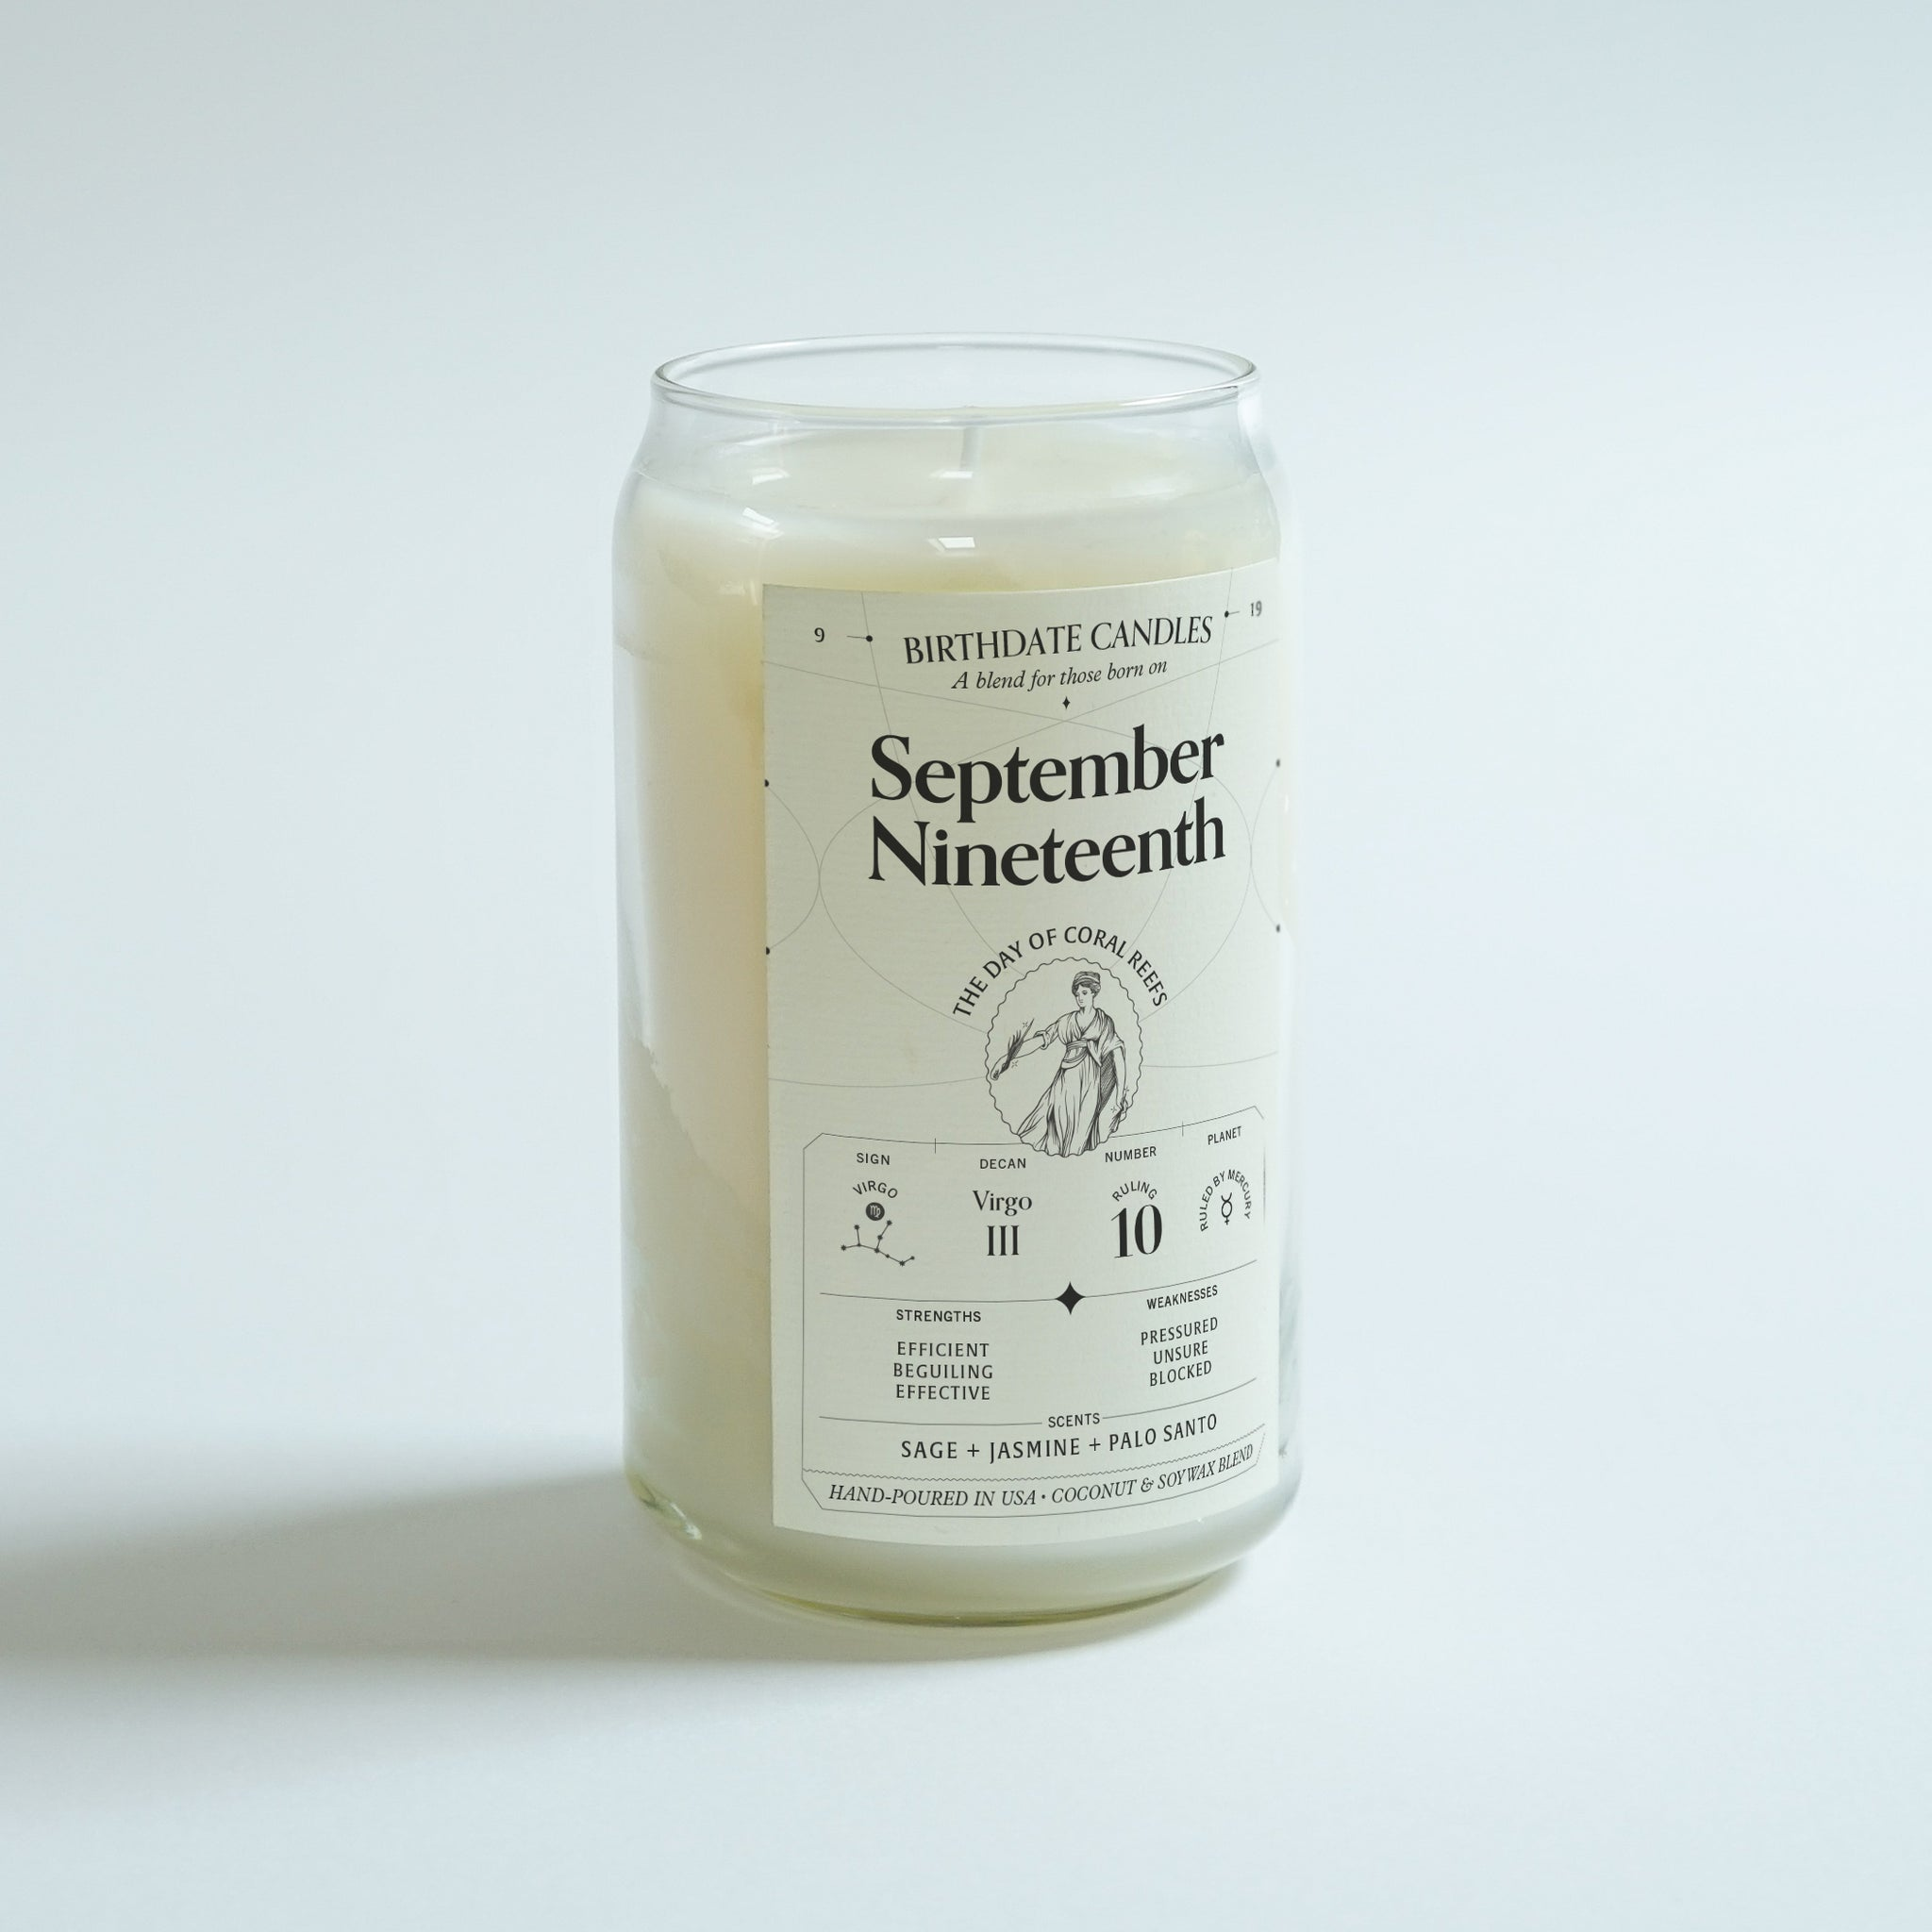 The September Nineteenth Candle